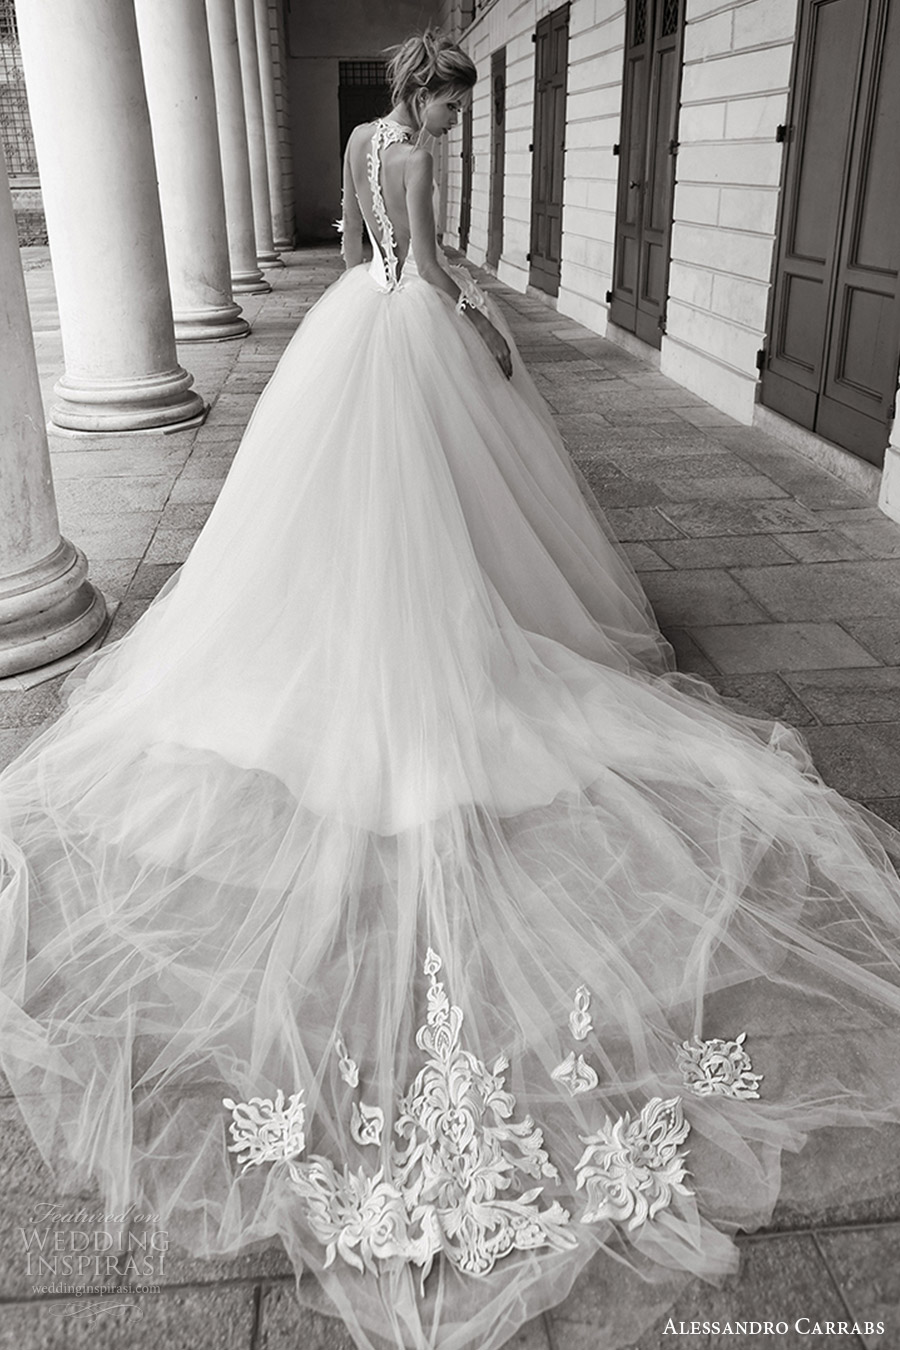 Alessandro carrabs 2016 wedding dresses palcoscenico for Ball gown wedding dresses with long trains